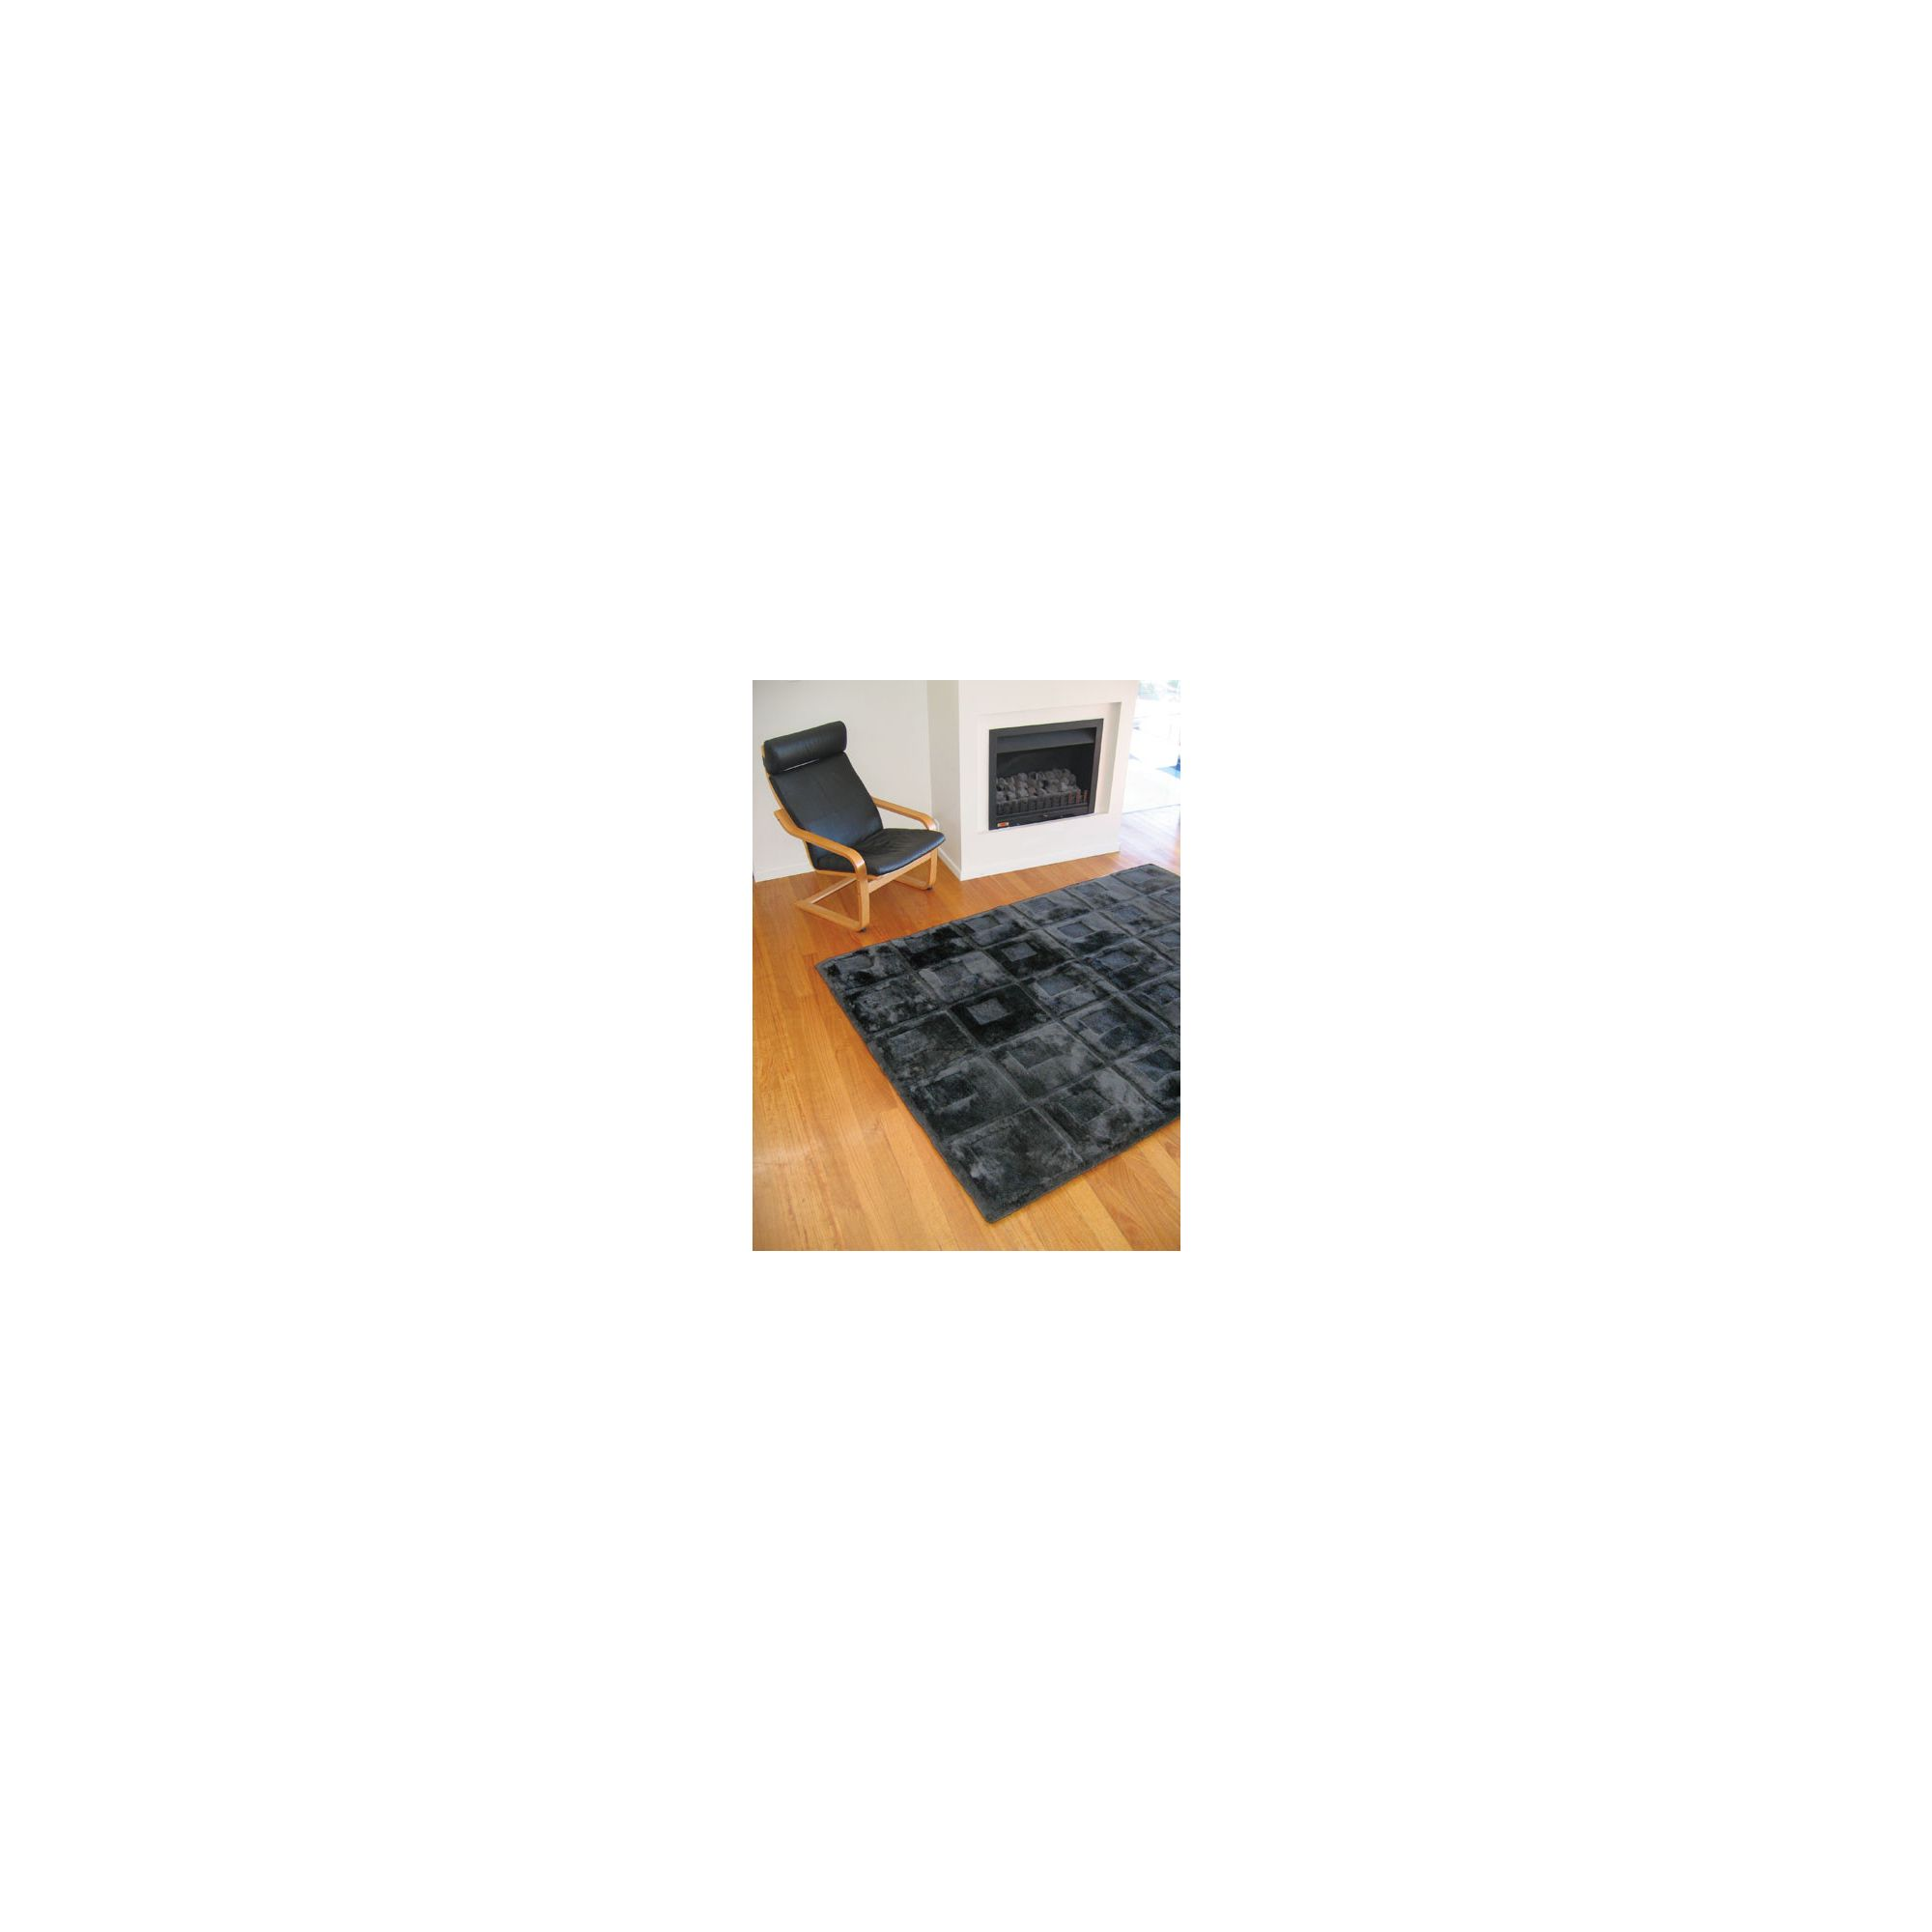 Bowron Sheepskin Shortwool Design Orbit Black Rug - 350cm H x 250cm W x 1cm D at Tesco Direct